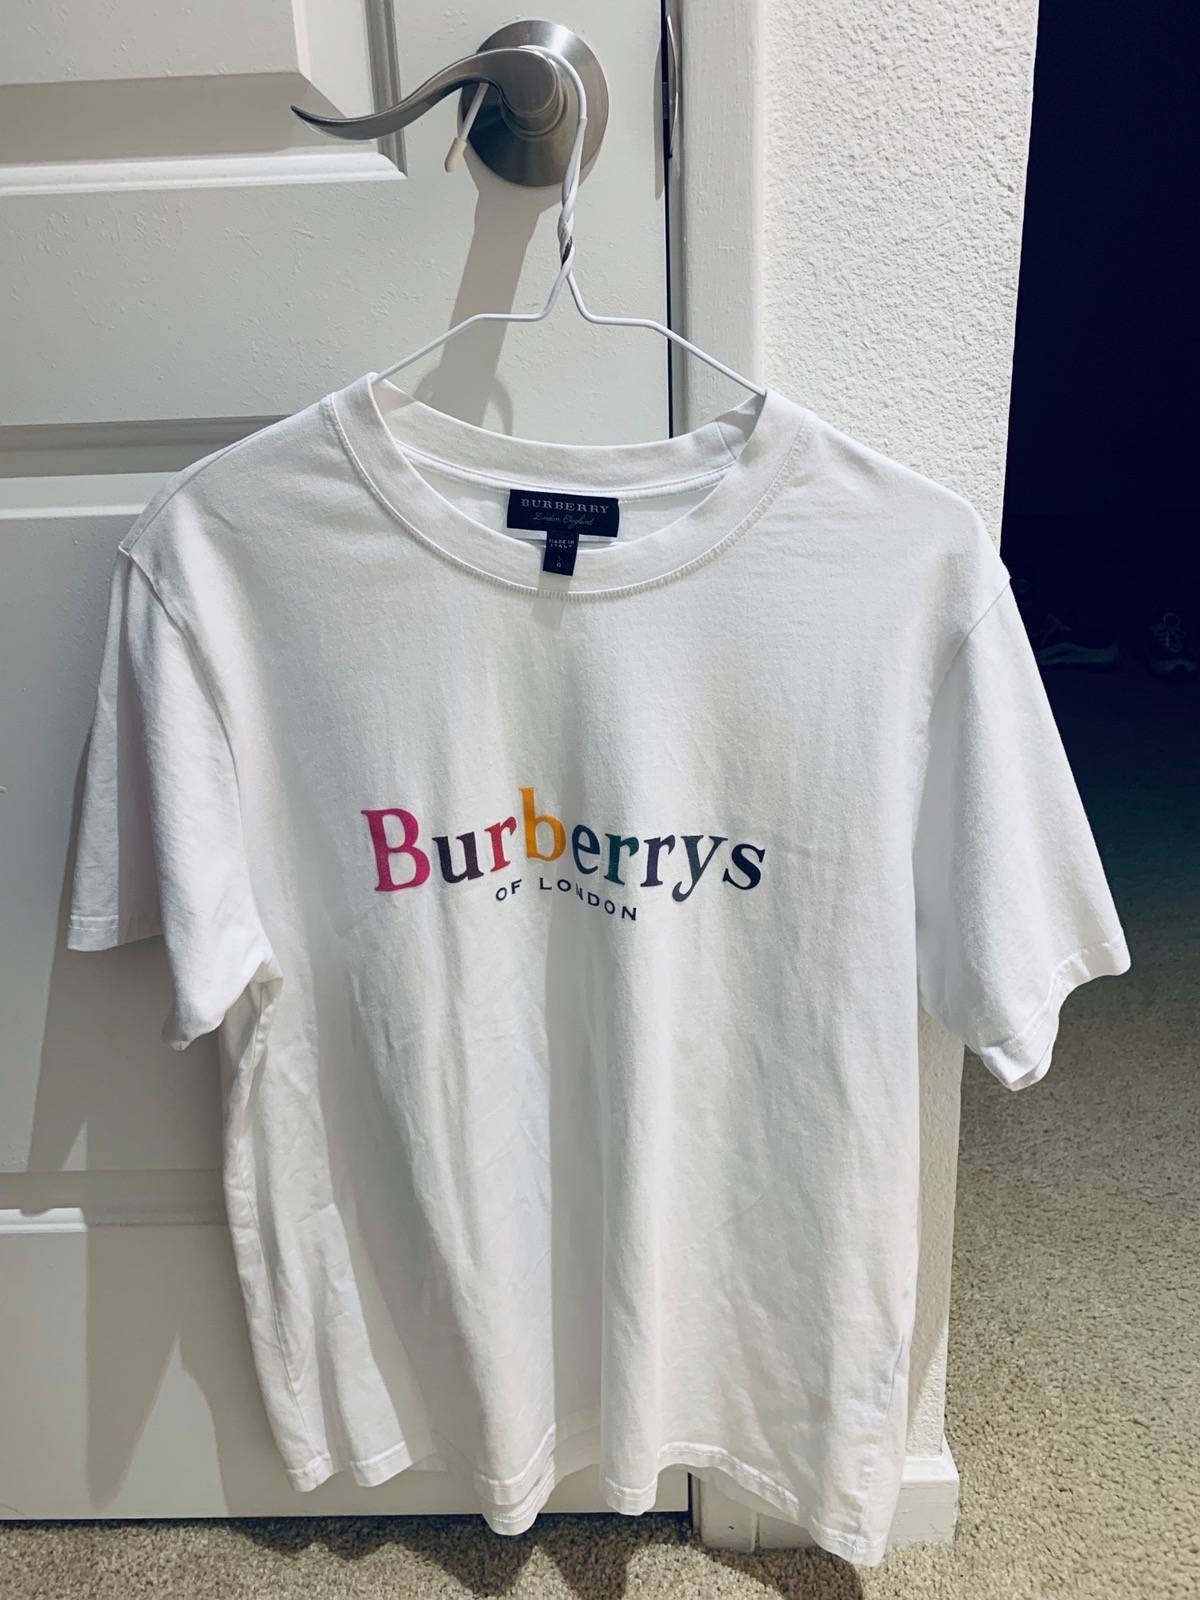 Burberry Burberry Rainbow Logo T Shirt Grailed